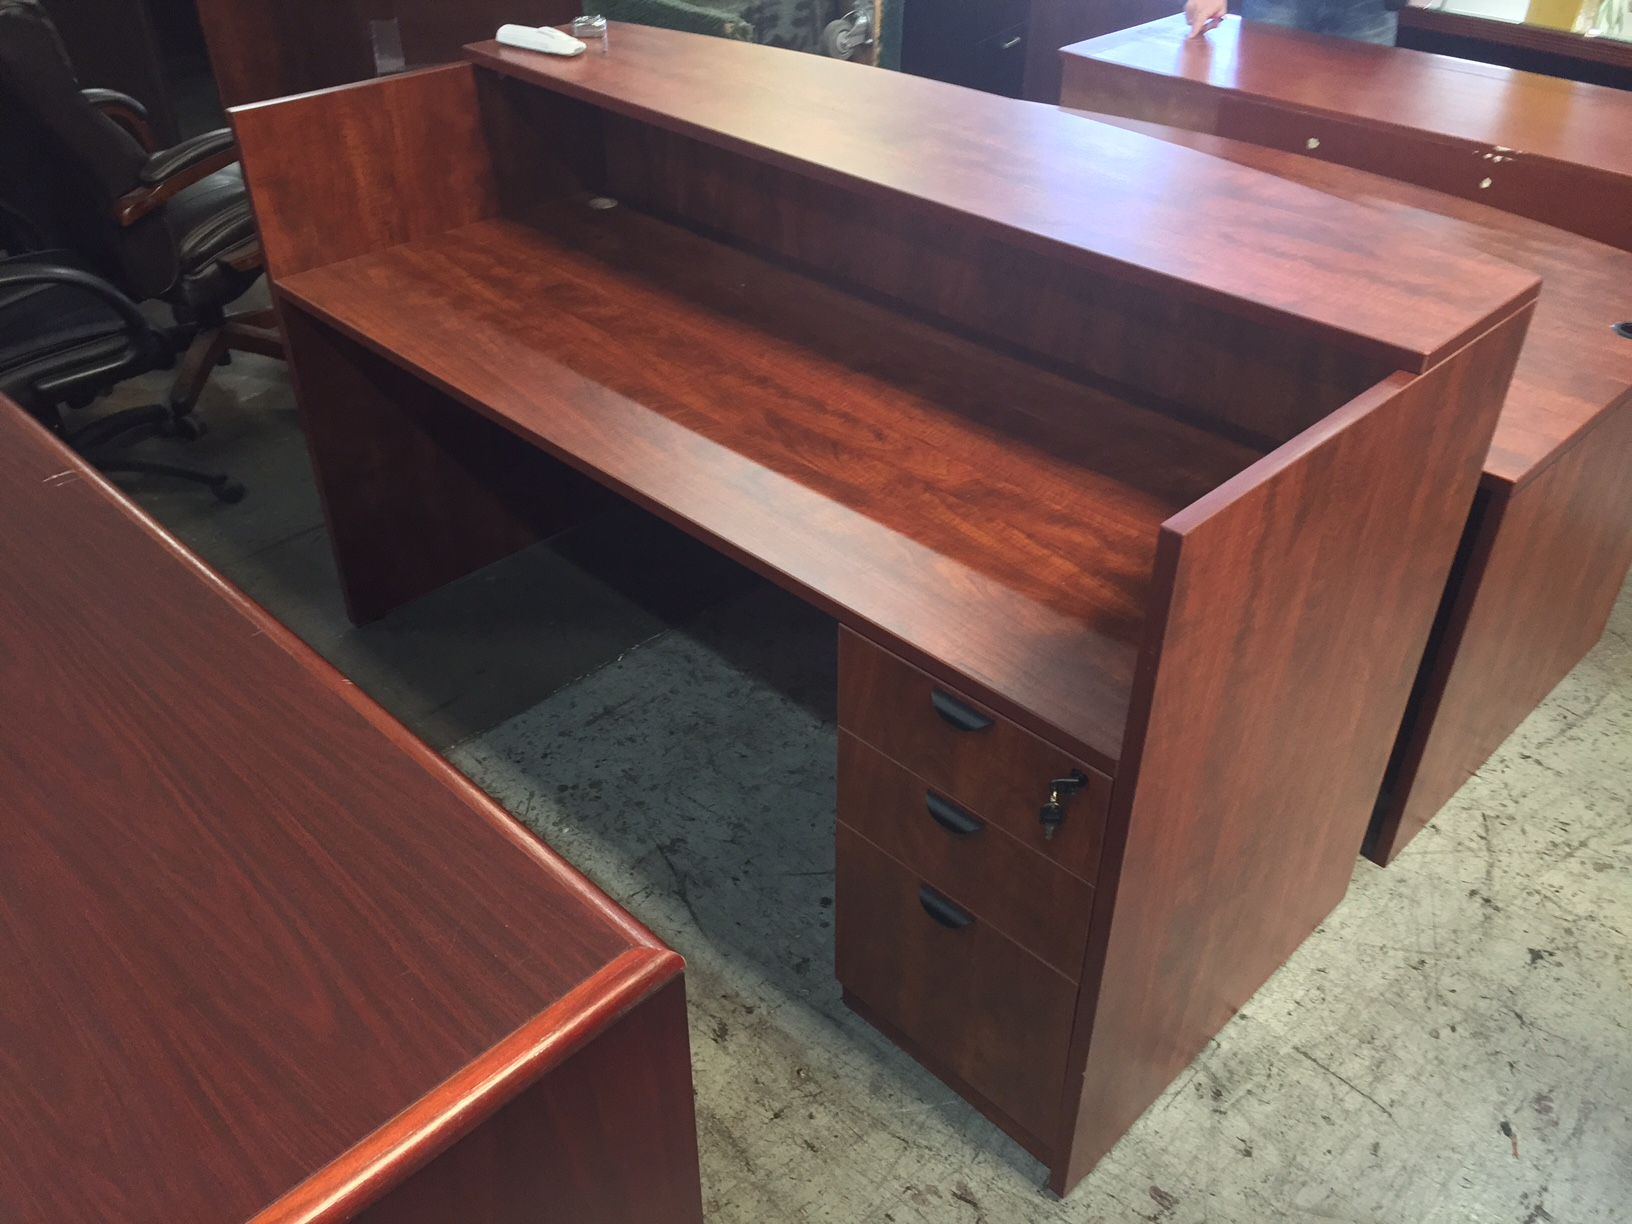 Cherry Reception Desk 8492 New And Used Office Furniture In Los Angeles And Orange County